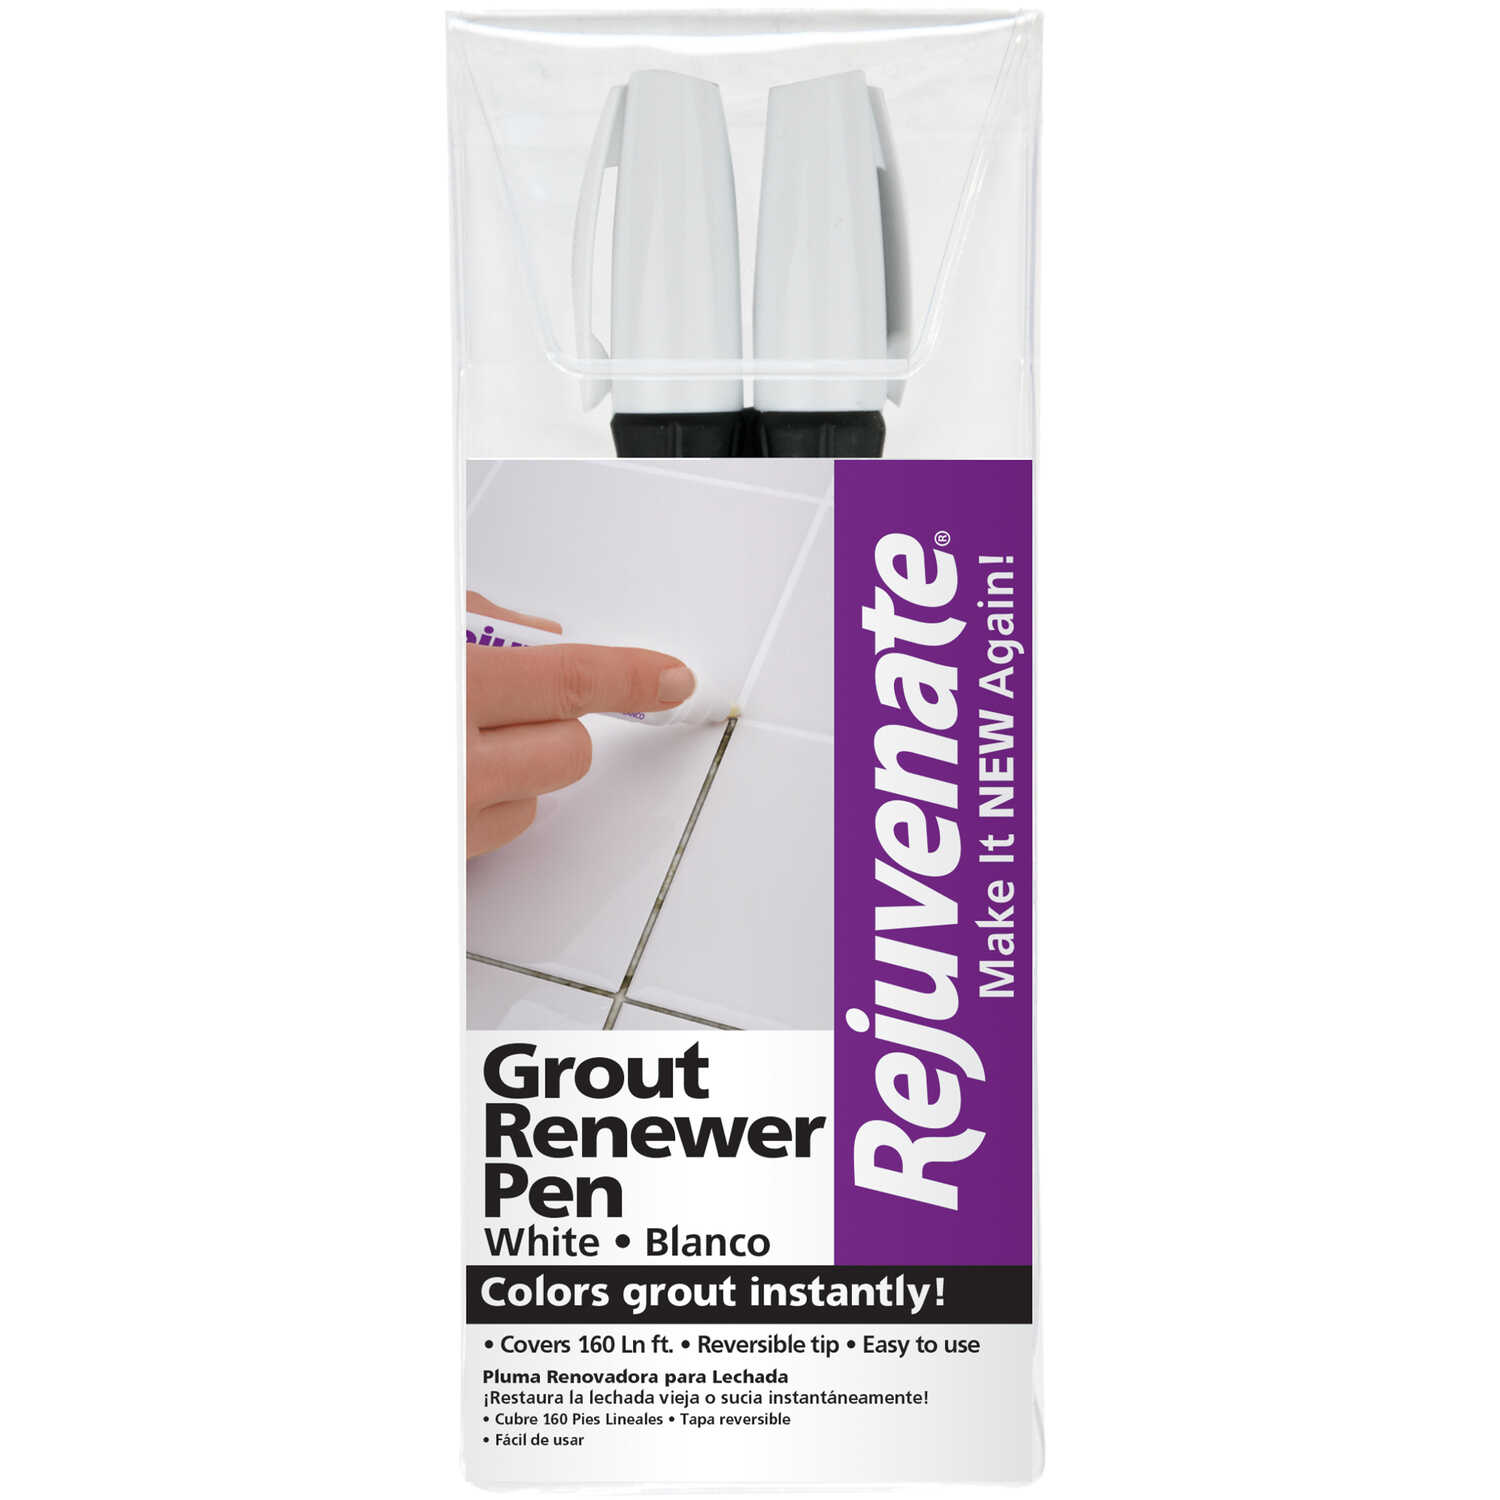 Rejuvenate Grout Pen 2 Pk Ace Hardware